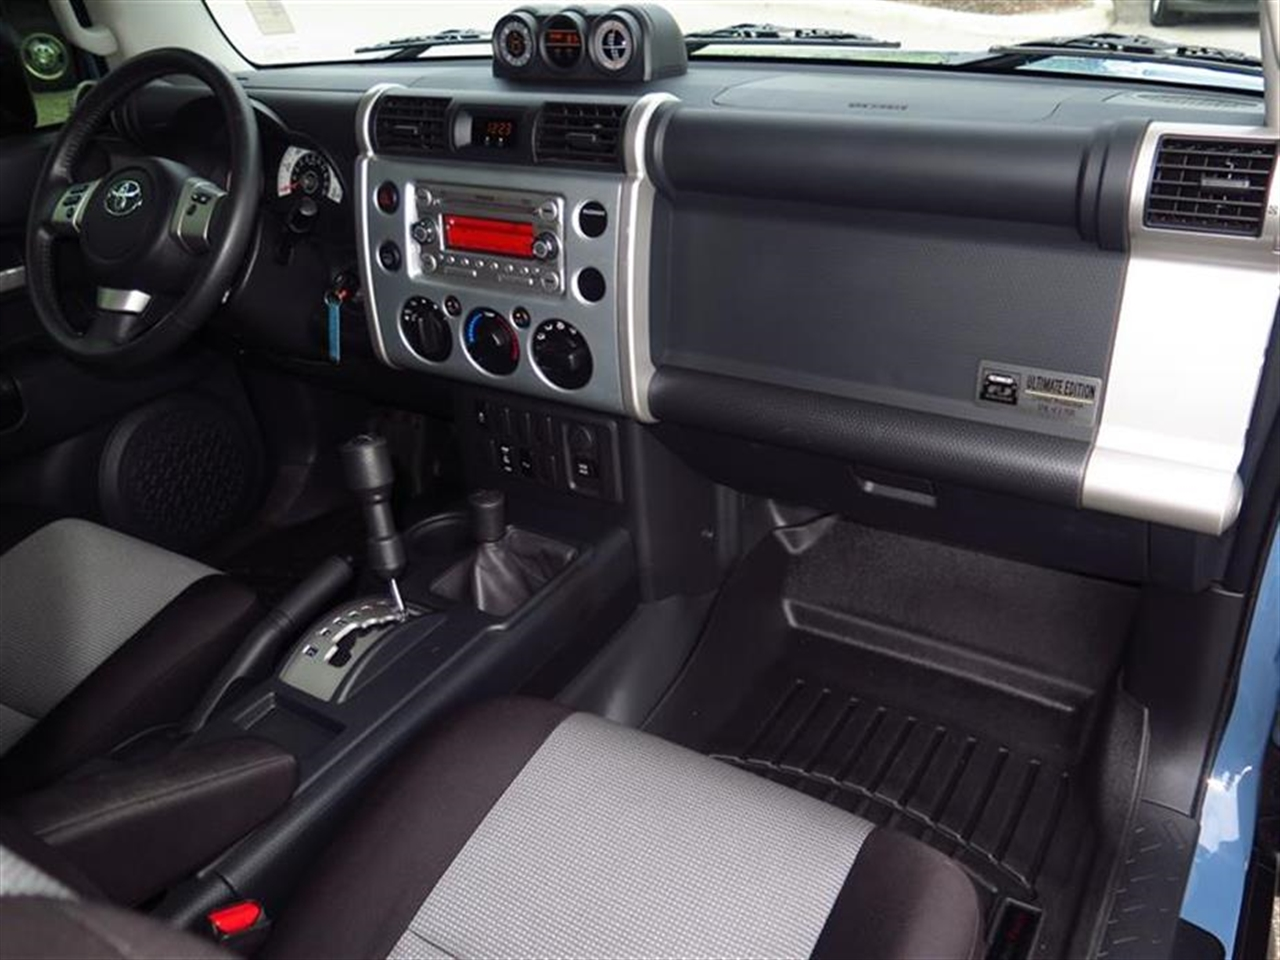 2014 TOYOTA FJ CRUISER 4WD 4dr Auto 40347 miles 1 12V DC Power Outlet 5 Person Seating Capacity